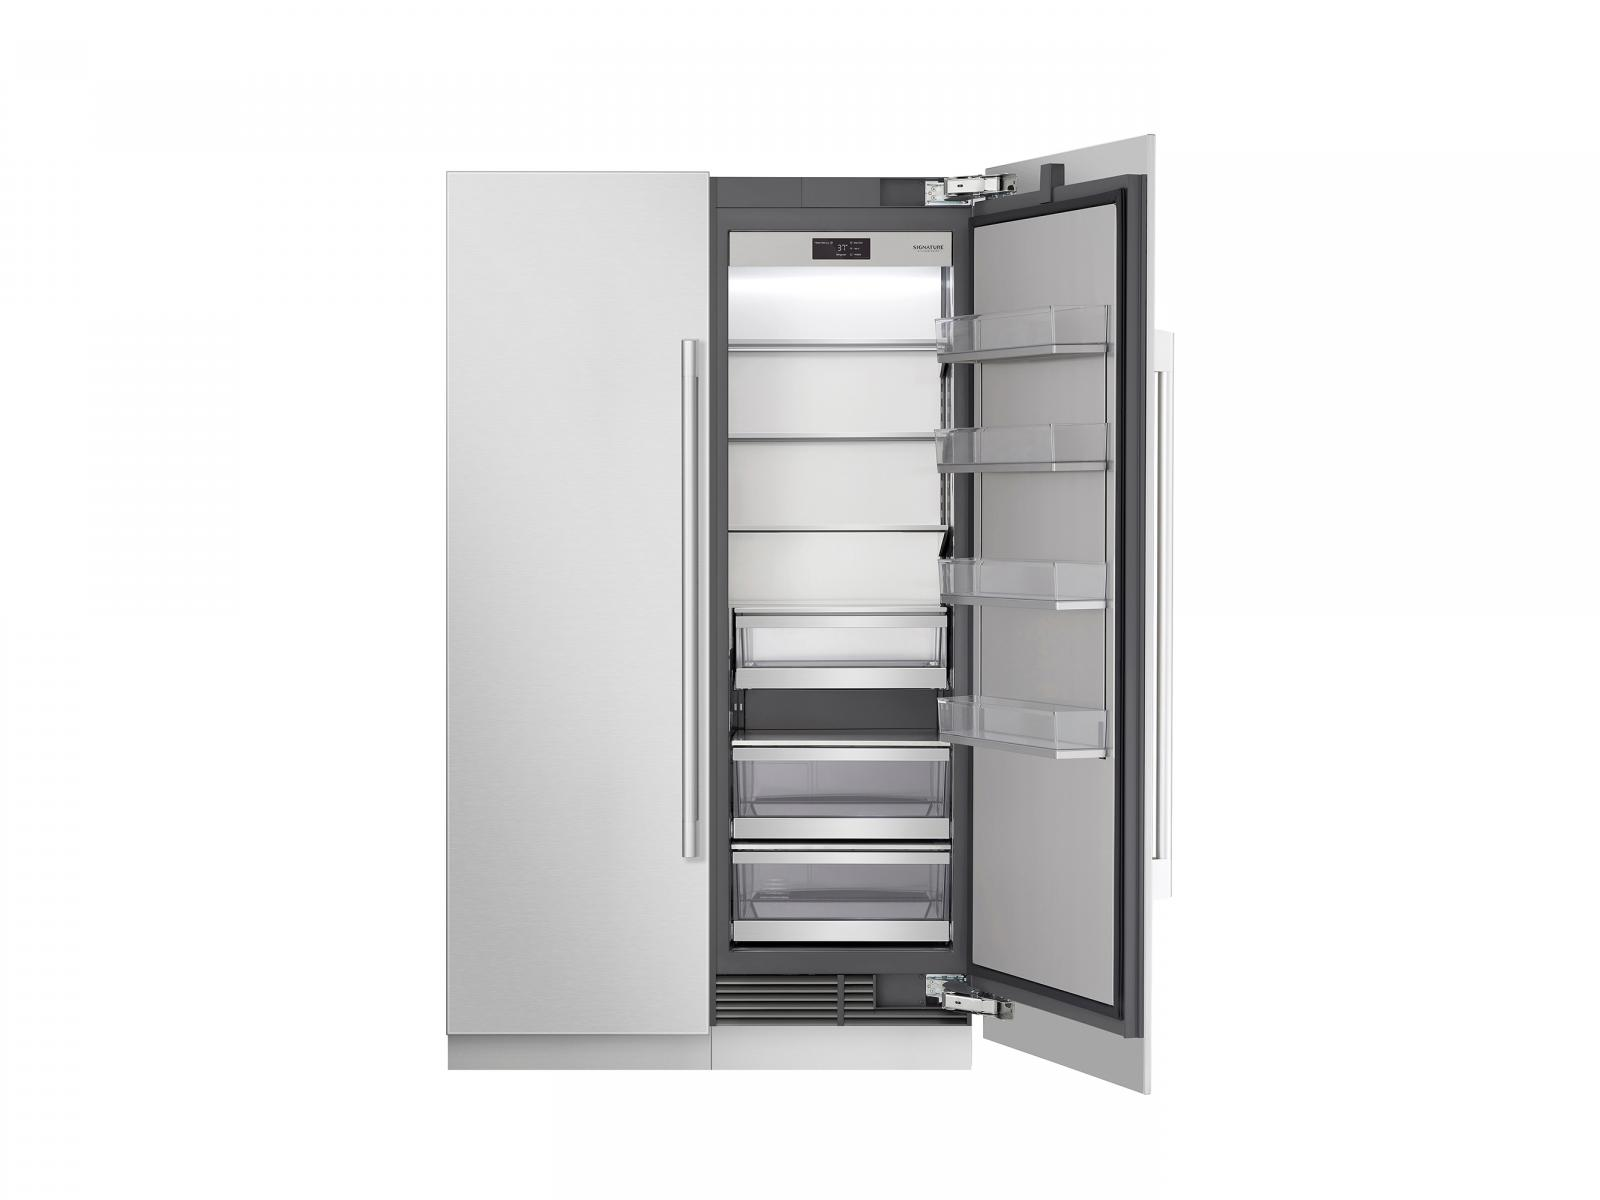 24-inch Integrated Column Refrigerator by Signature Kitchen Suite